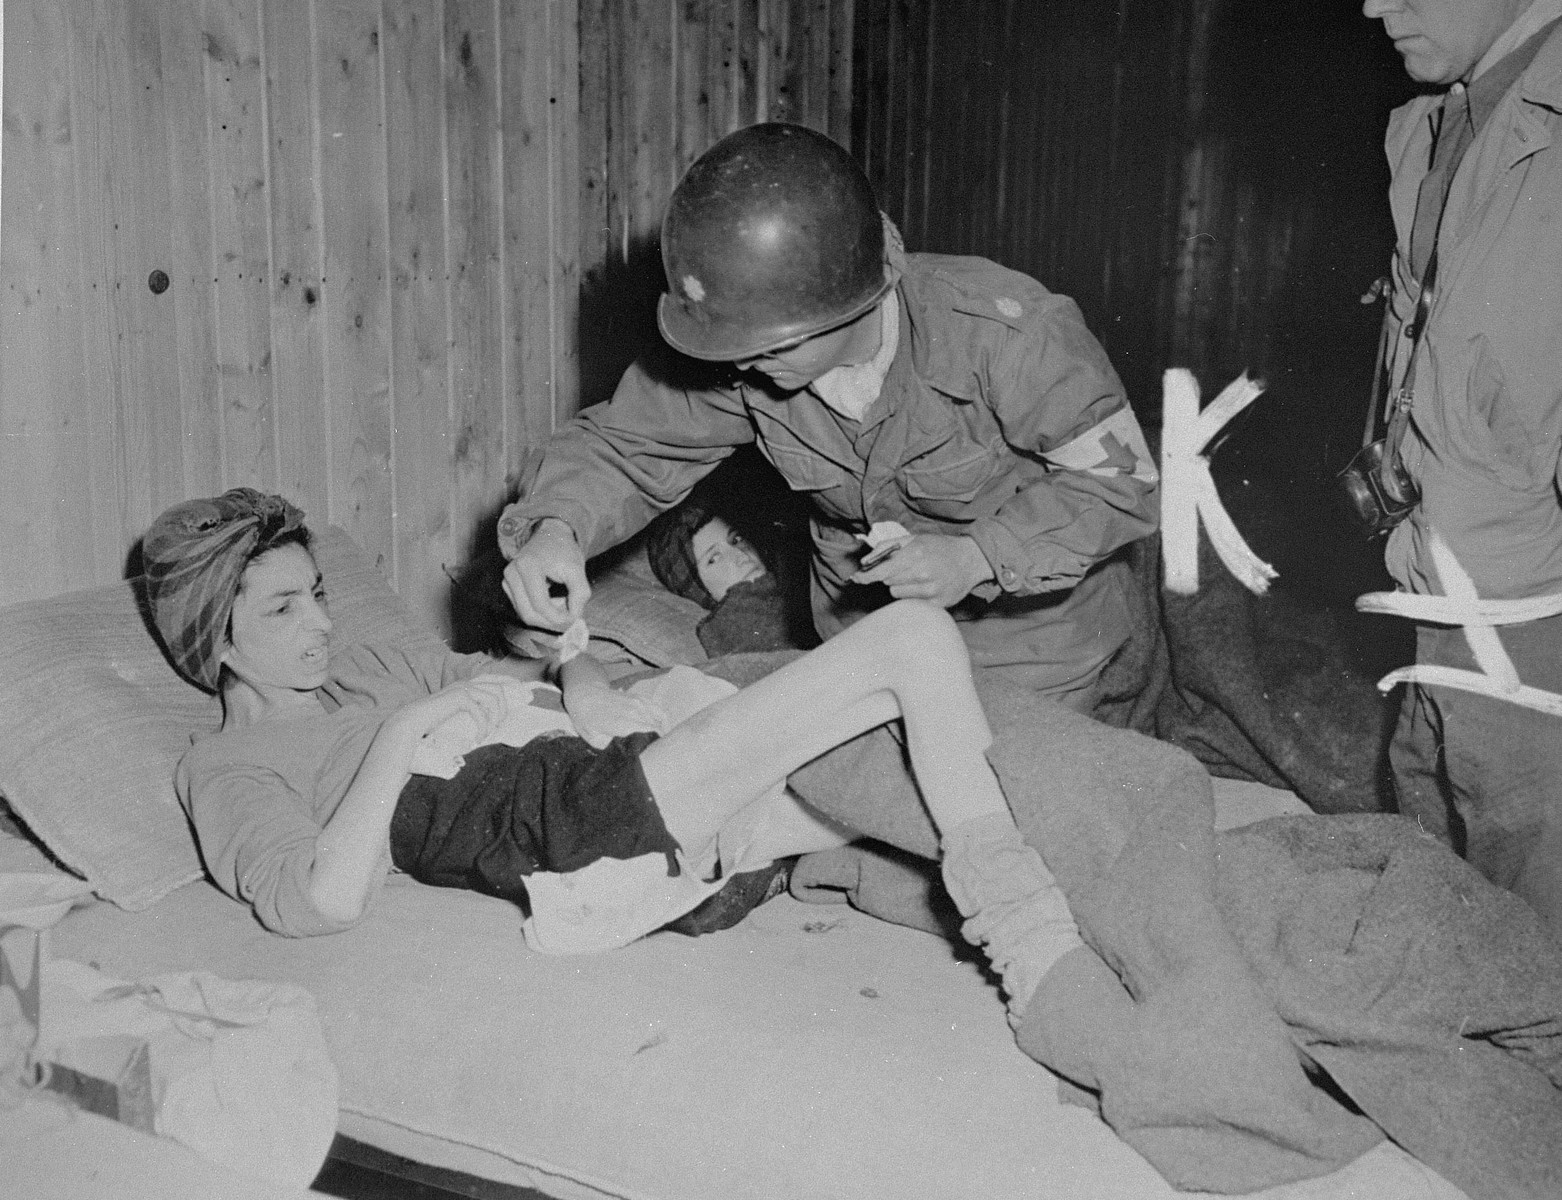 Lt. Col. J.W. Branch, Chief Surgeon of the 6th Armored Division, 3rd U.S. Army, dresses body sores of a Hungarian woman survivor in Penig, a sub-camp of Buchenwald.    SS guards evacuated all those prisoners who could still walk upon the approach of American troops, leaving behind those too ill to move.  Women in the camp suffered from starvation, typhus, diptheria, and tuberculosis.